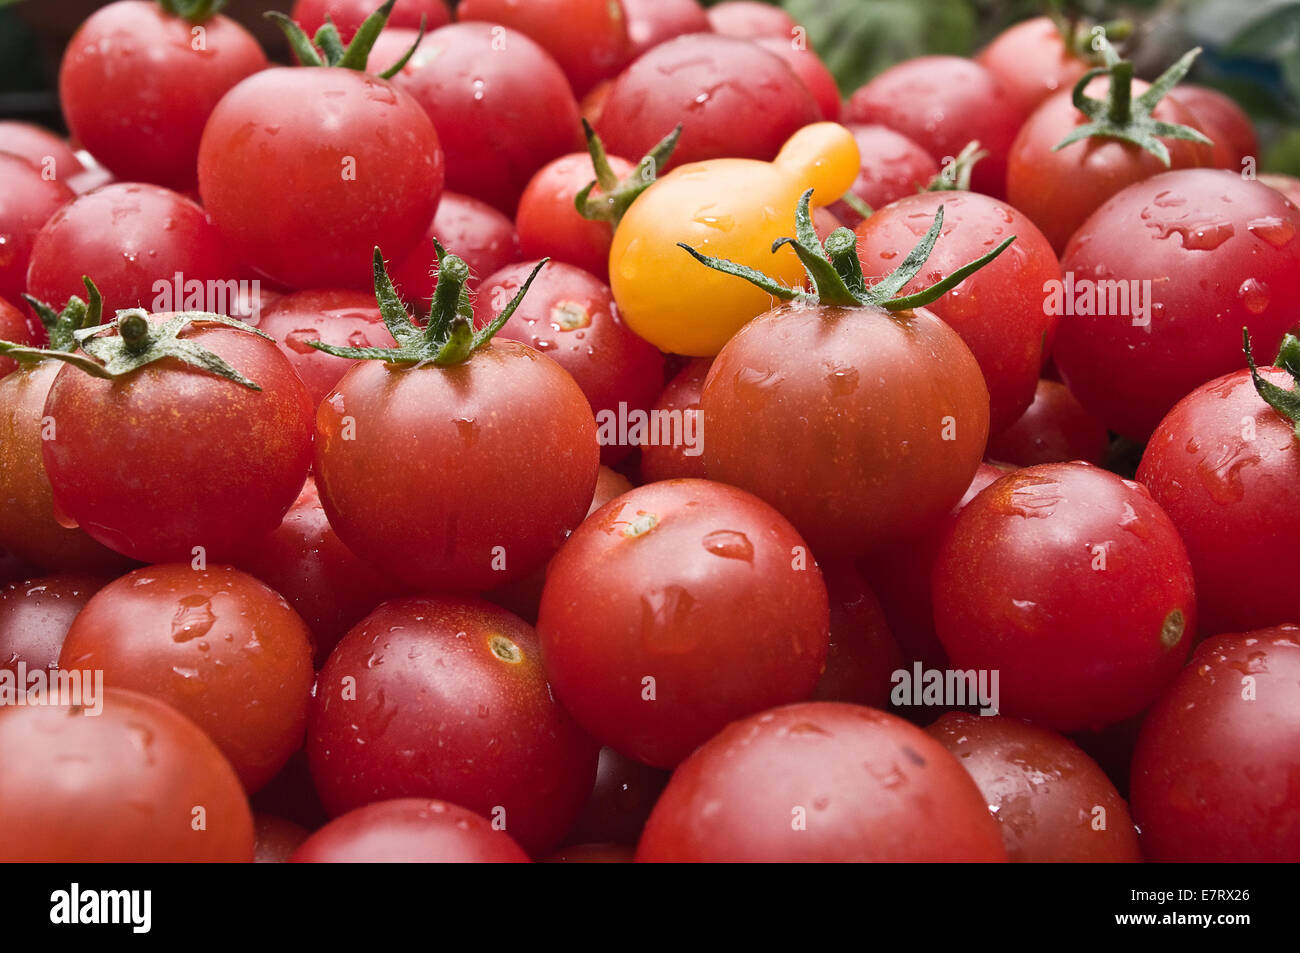 Fresh organic Cherry tomatoes at the market / Organic Cherry tomatoes freshly picked from the garden - Stock Image